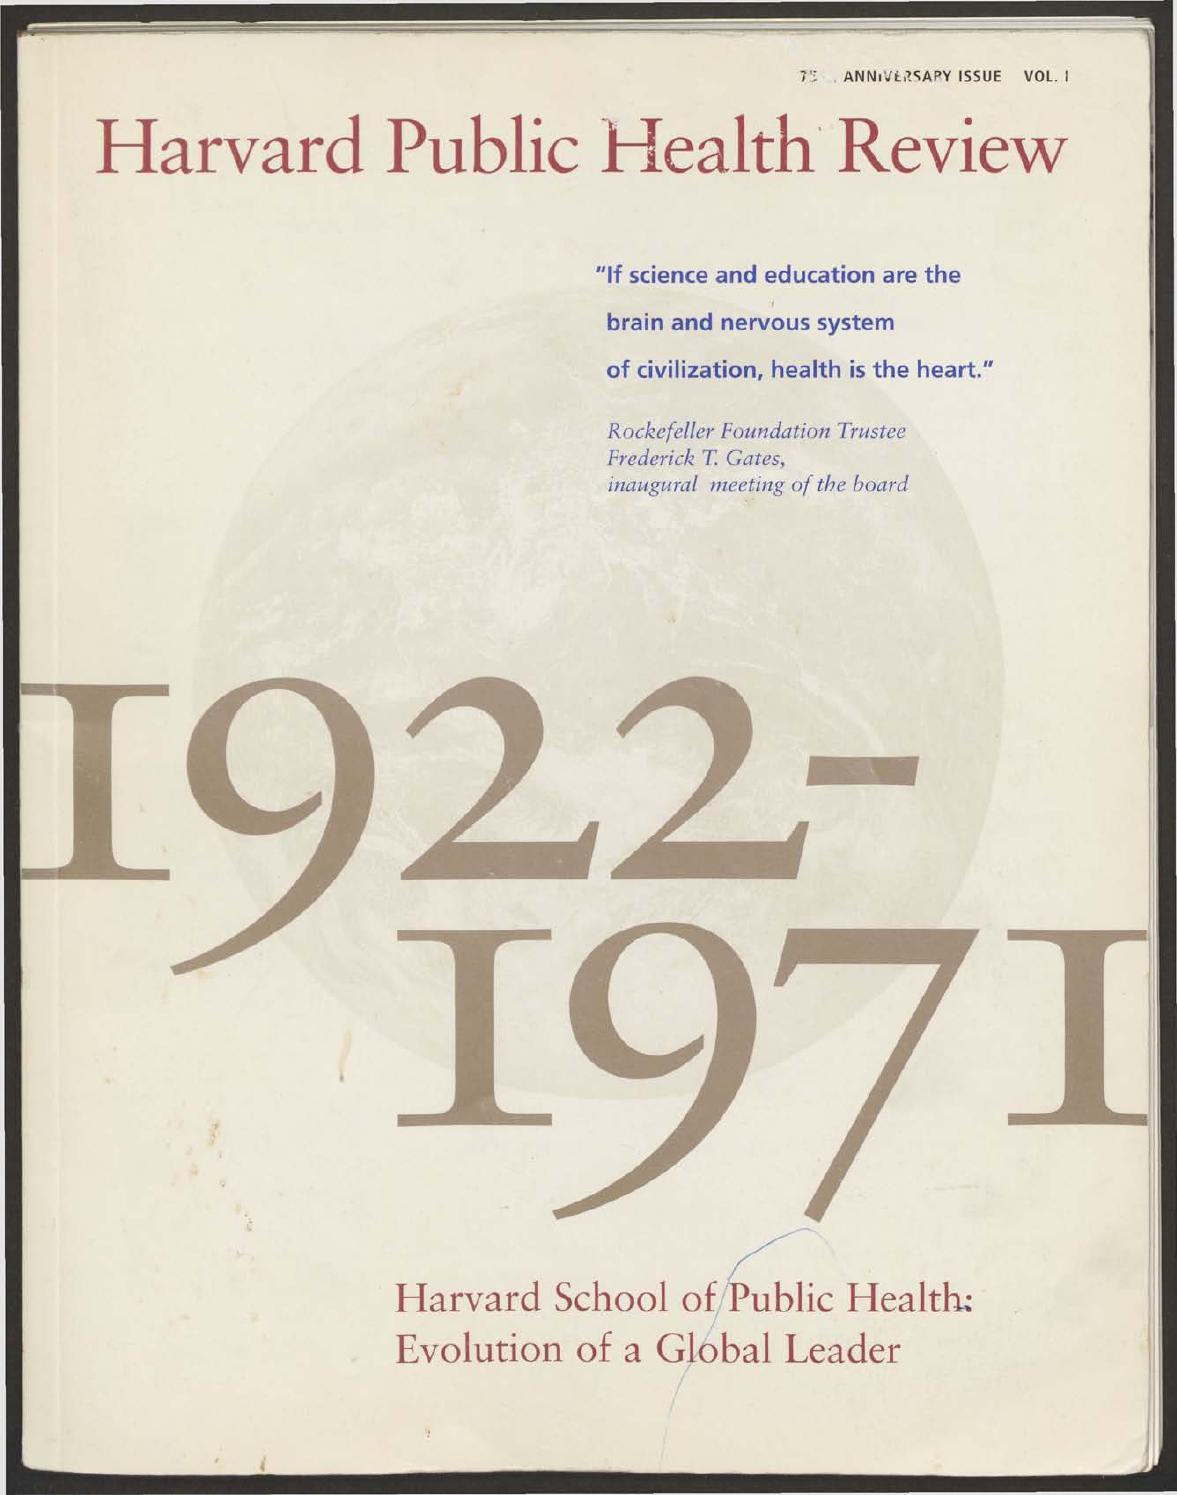 Harvard Public Health Review 75th Anniversary Issue Vol I By Electric Gate Motor Wiring Furthermore Diagram For Apollo Th Chan School Of Issuu